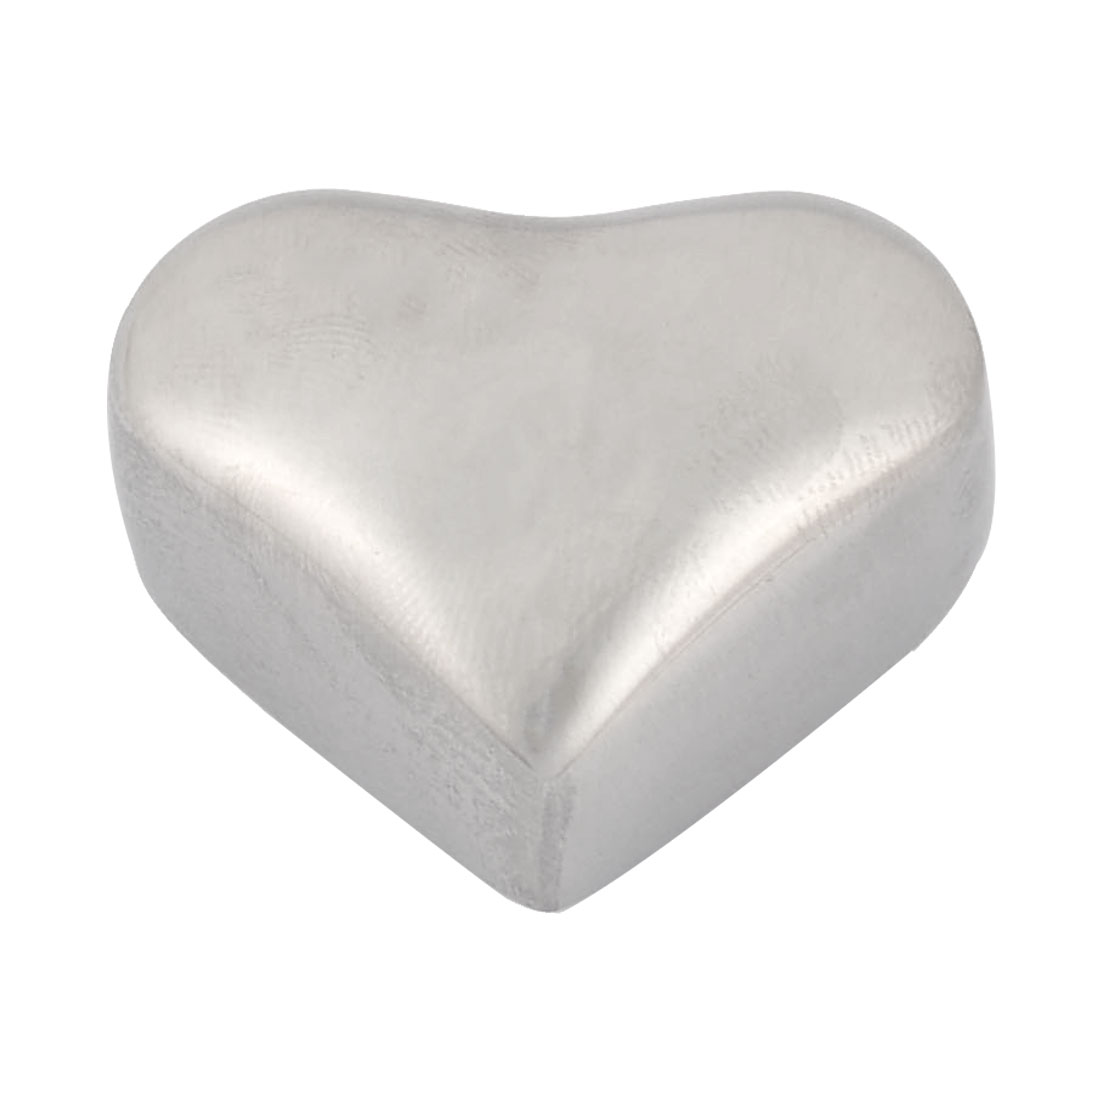 Home Stainless Steel Heart Shaped Soda Juice Physical Cooling Ice Cube Silver Tone